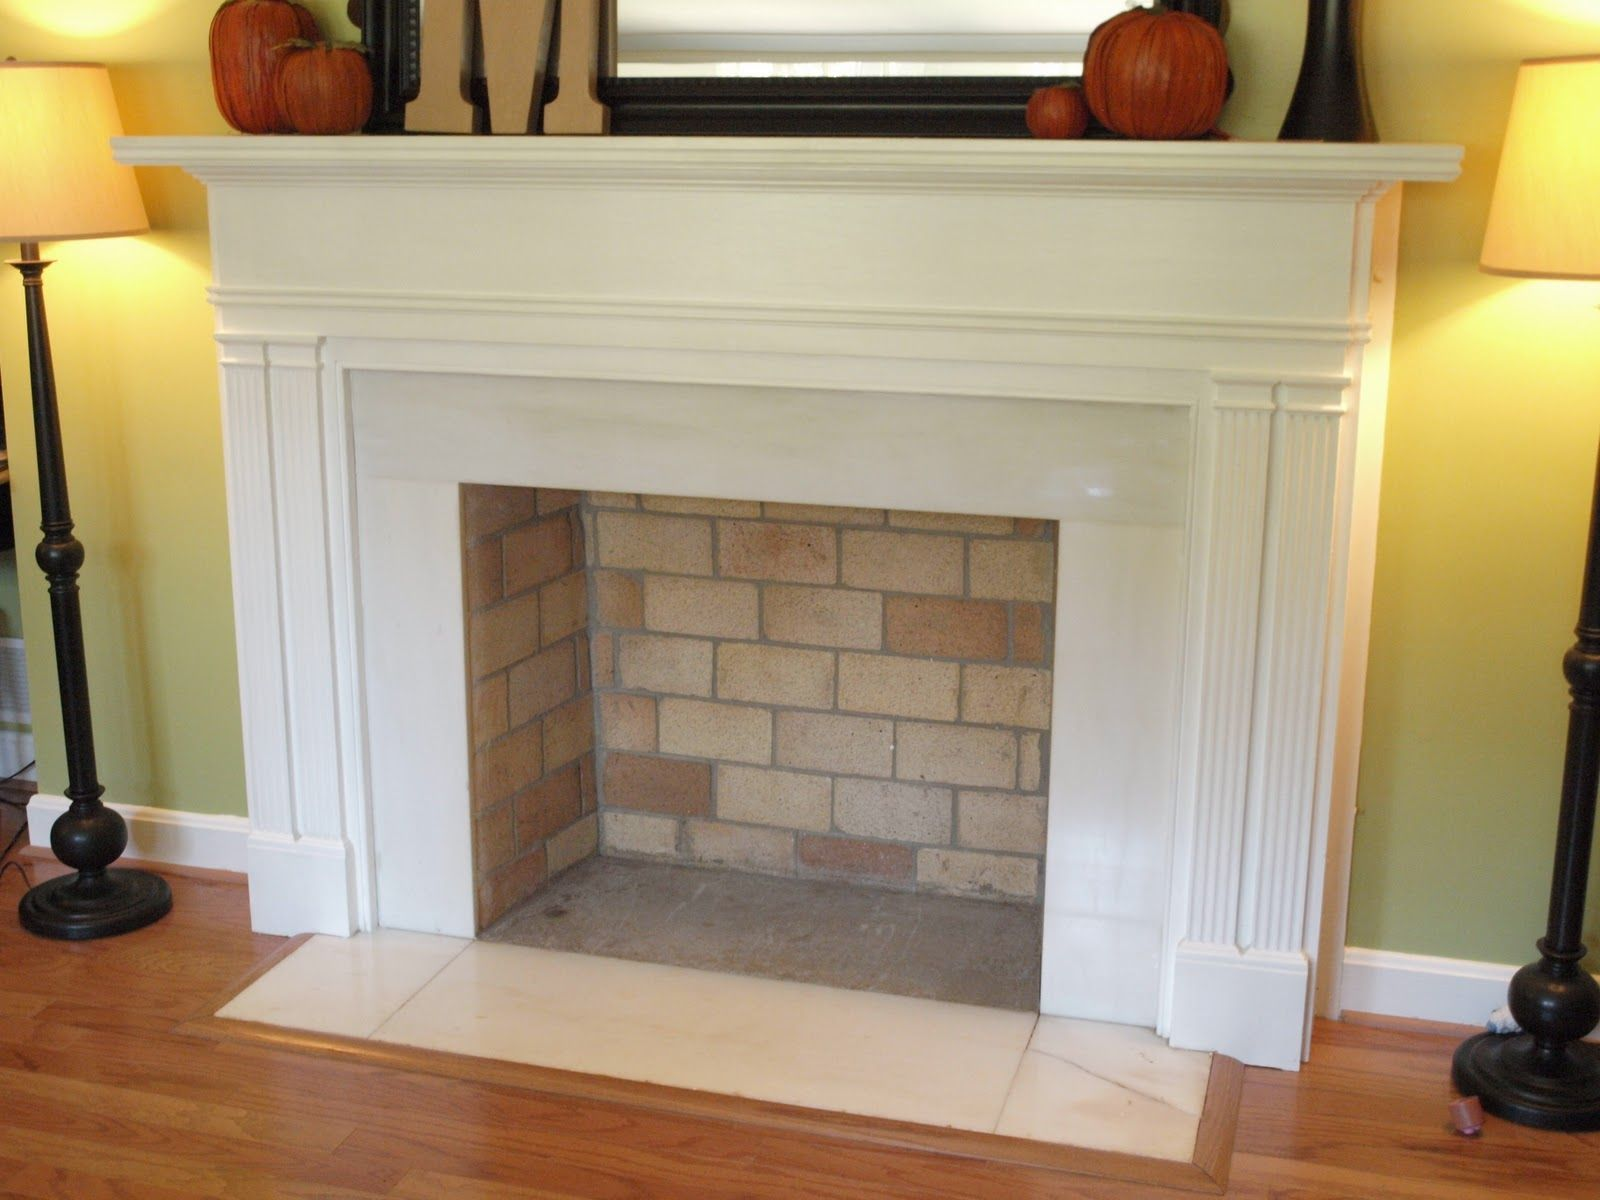 Fall is in the air and on the mantel Cardboard fireplace